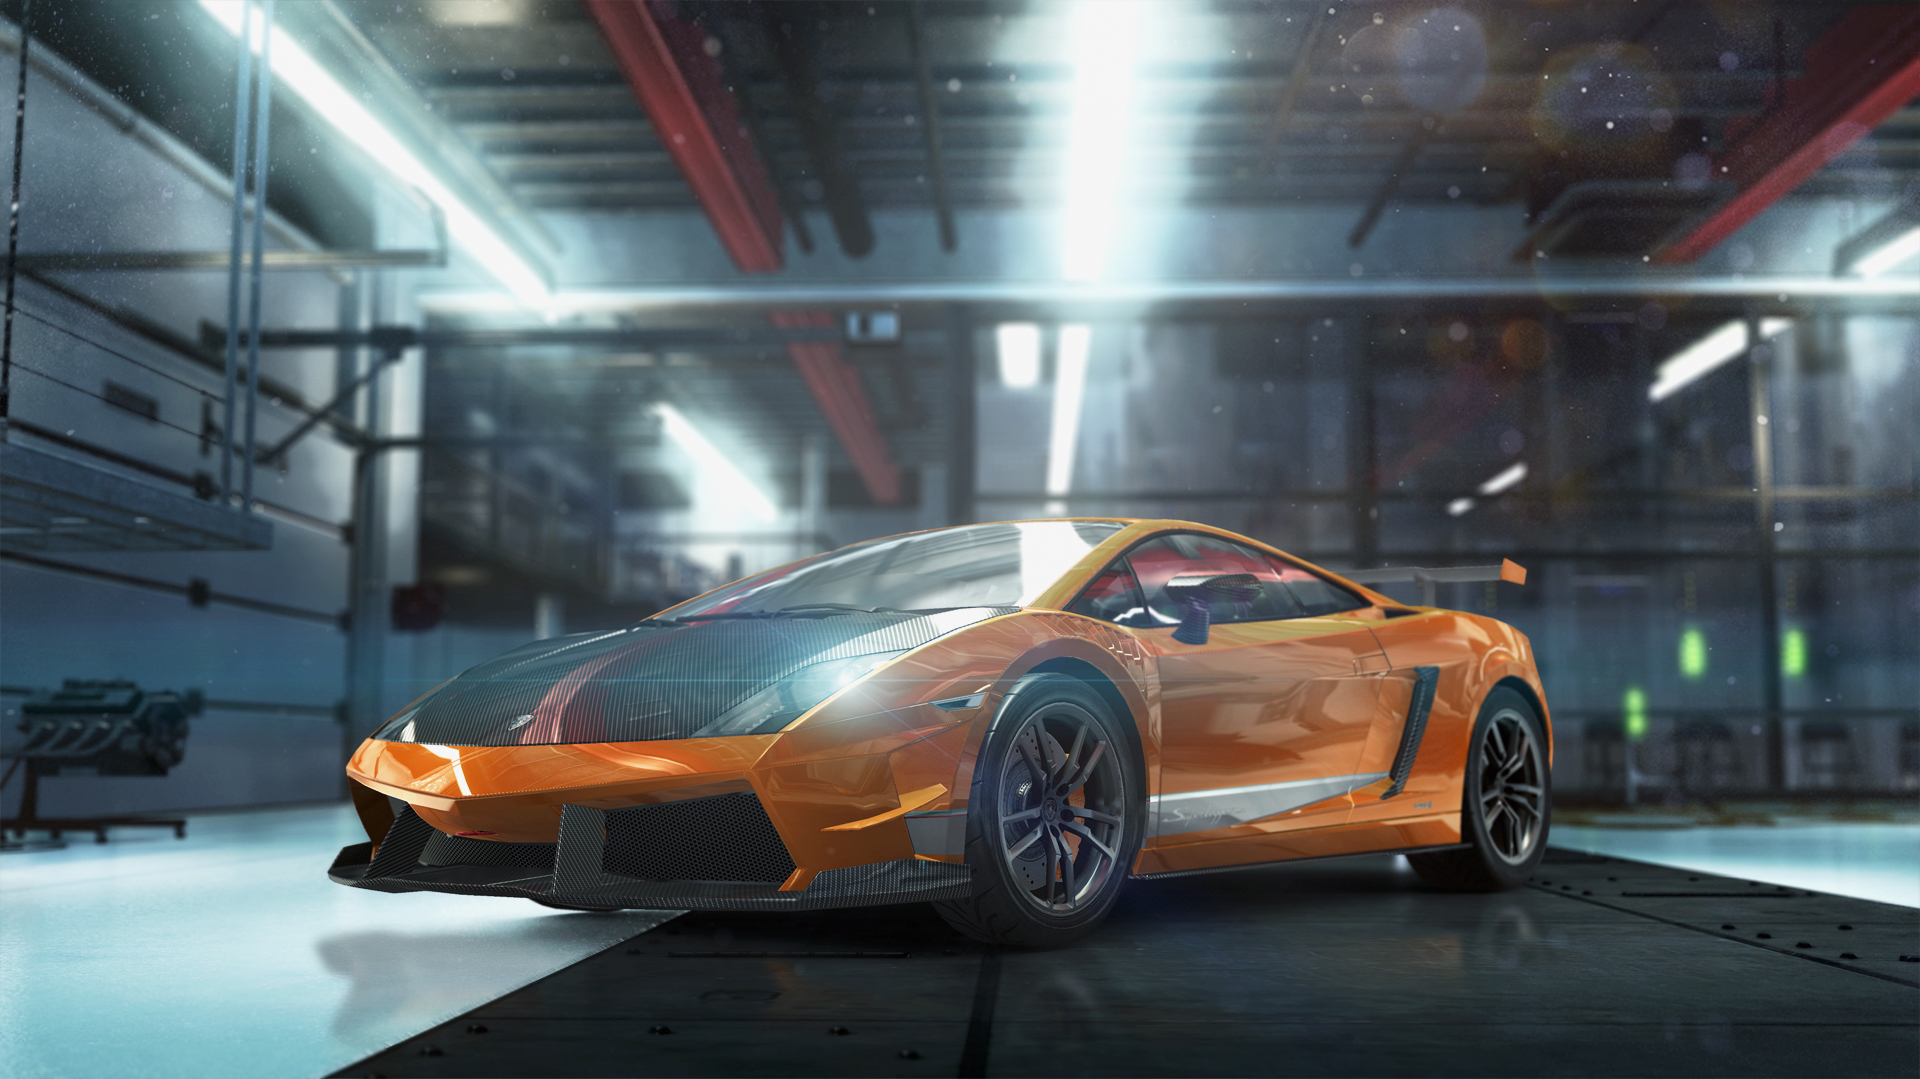 http://vignette1.wikia.nocookie.net/thecrew/images/1/1c/LAMBORGHINI_GALLARDO_LP_570-4_SUPERLEGGERA_perf_big.jpg/revision/latest?cb=20141228083001